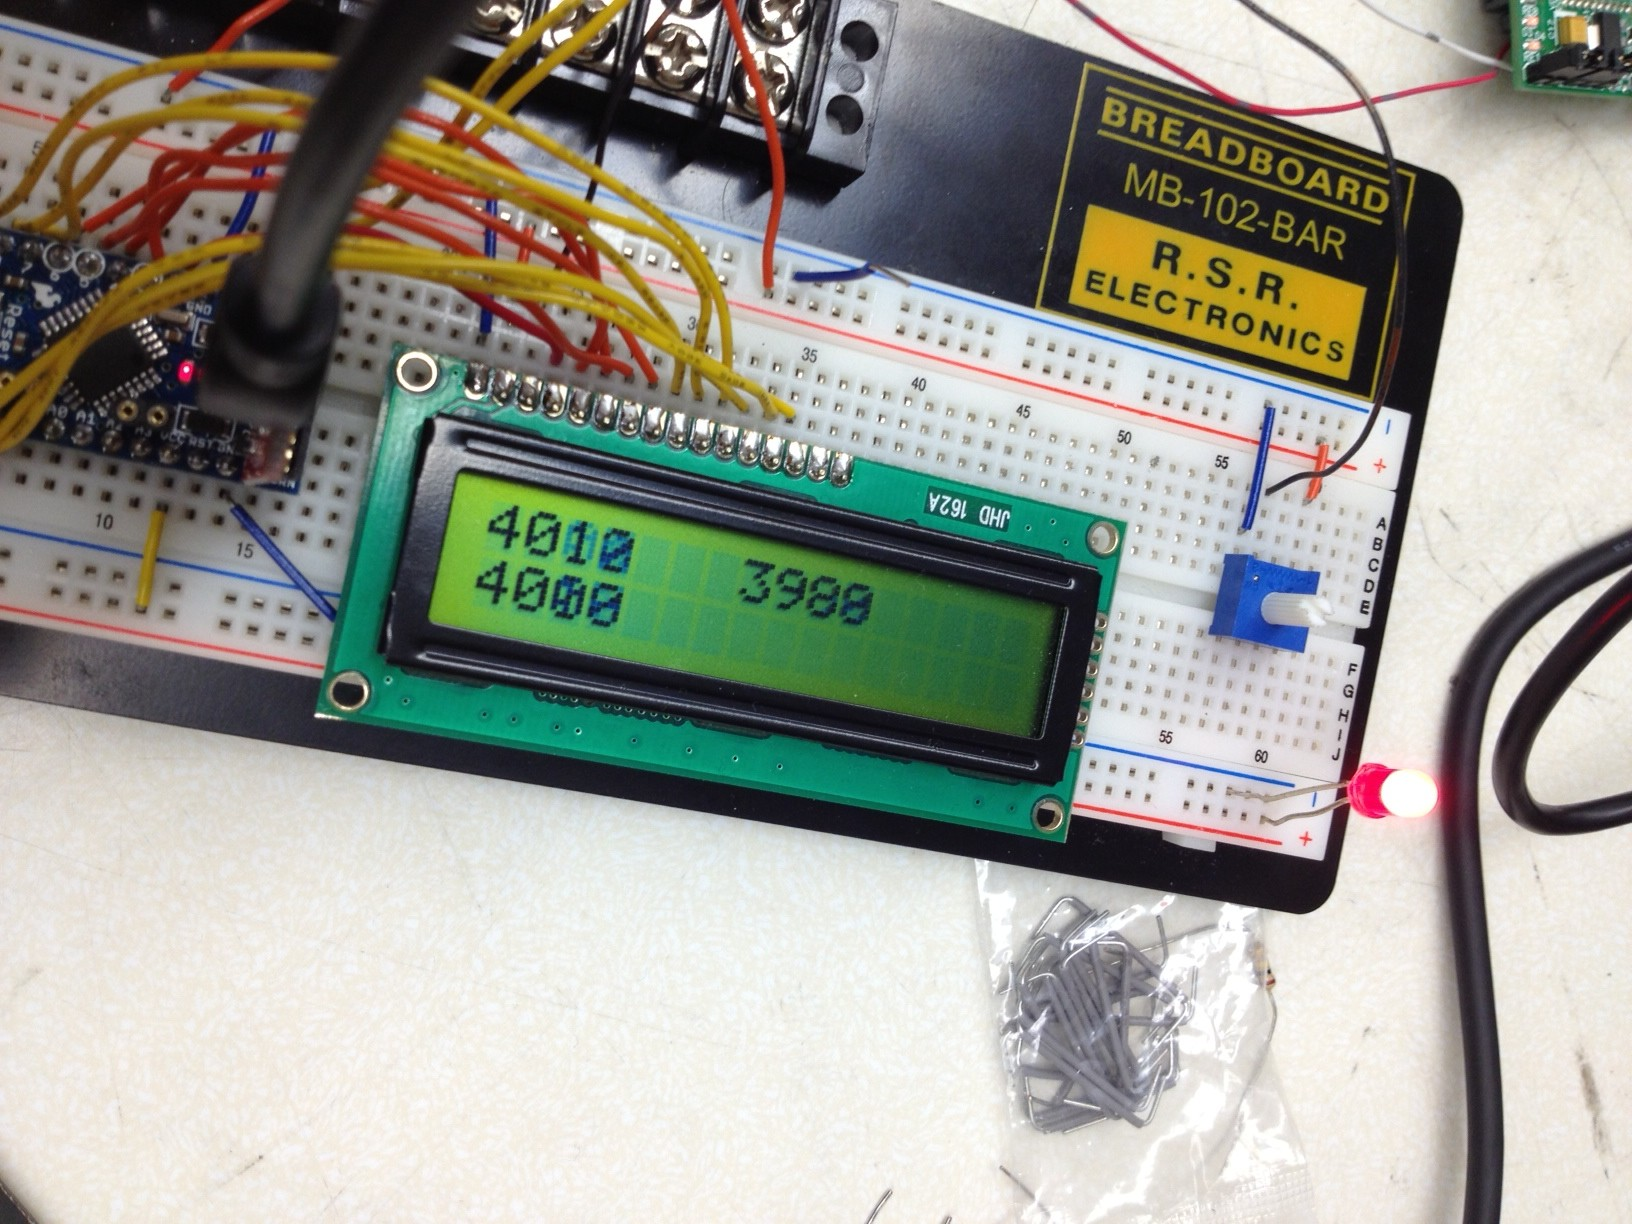 Jordan Wagners Lab Notebook Prototype Pcb Printed Circuit Board Breadboard Protoboard 1200 Points Arduino Controlled Lcd Controlling